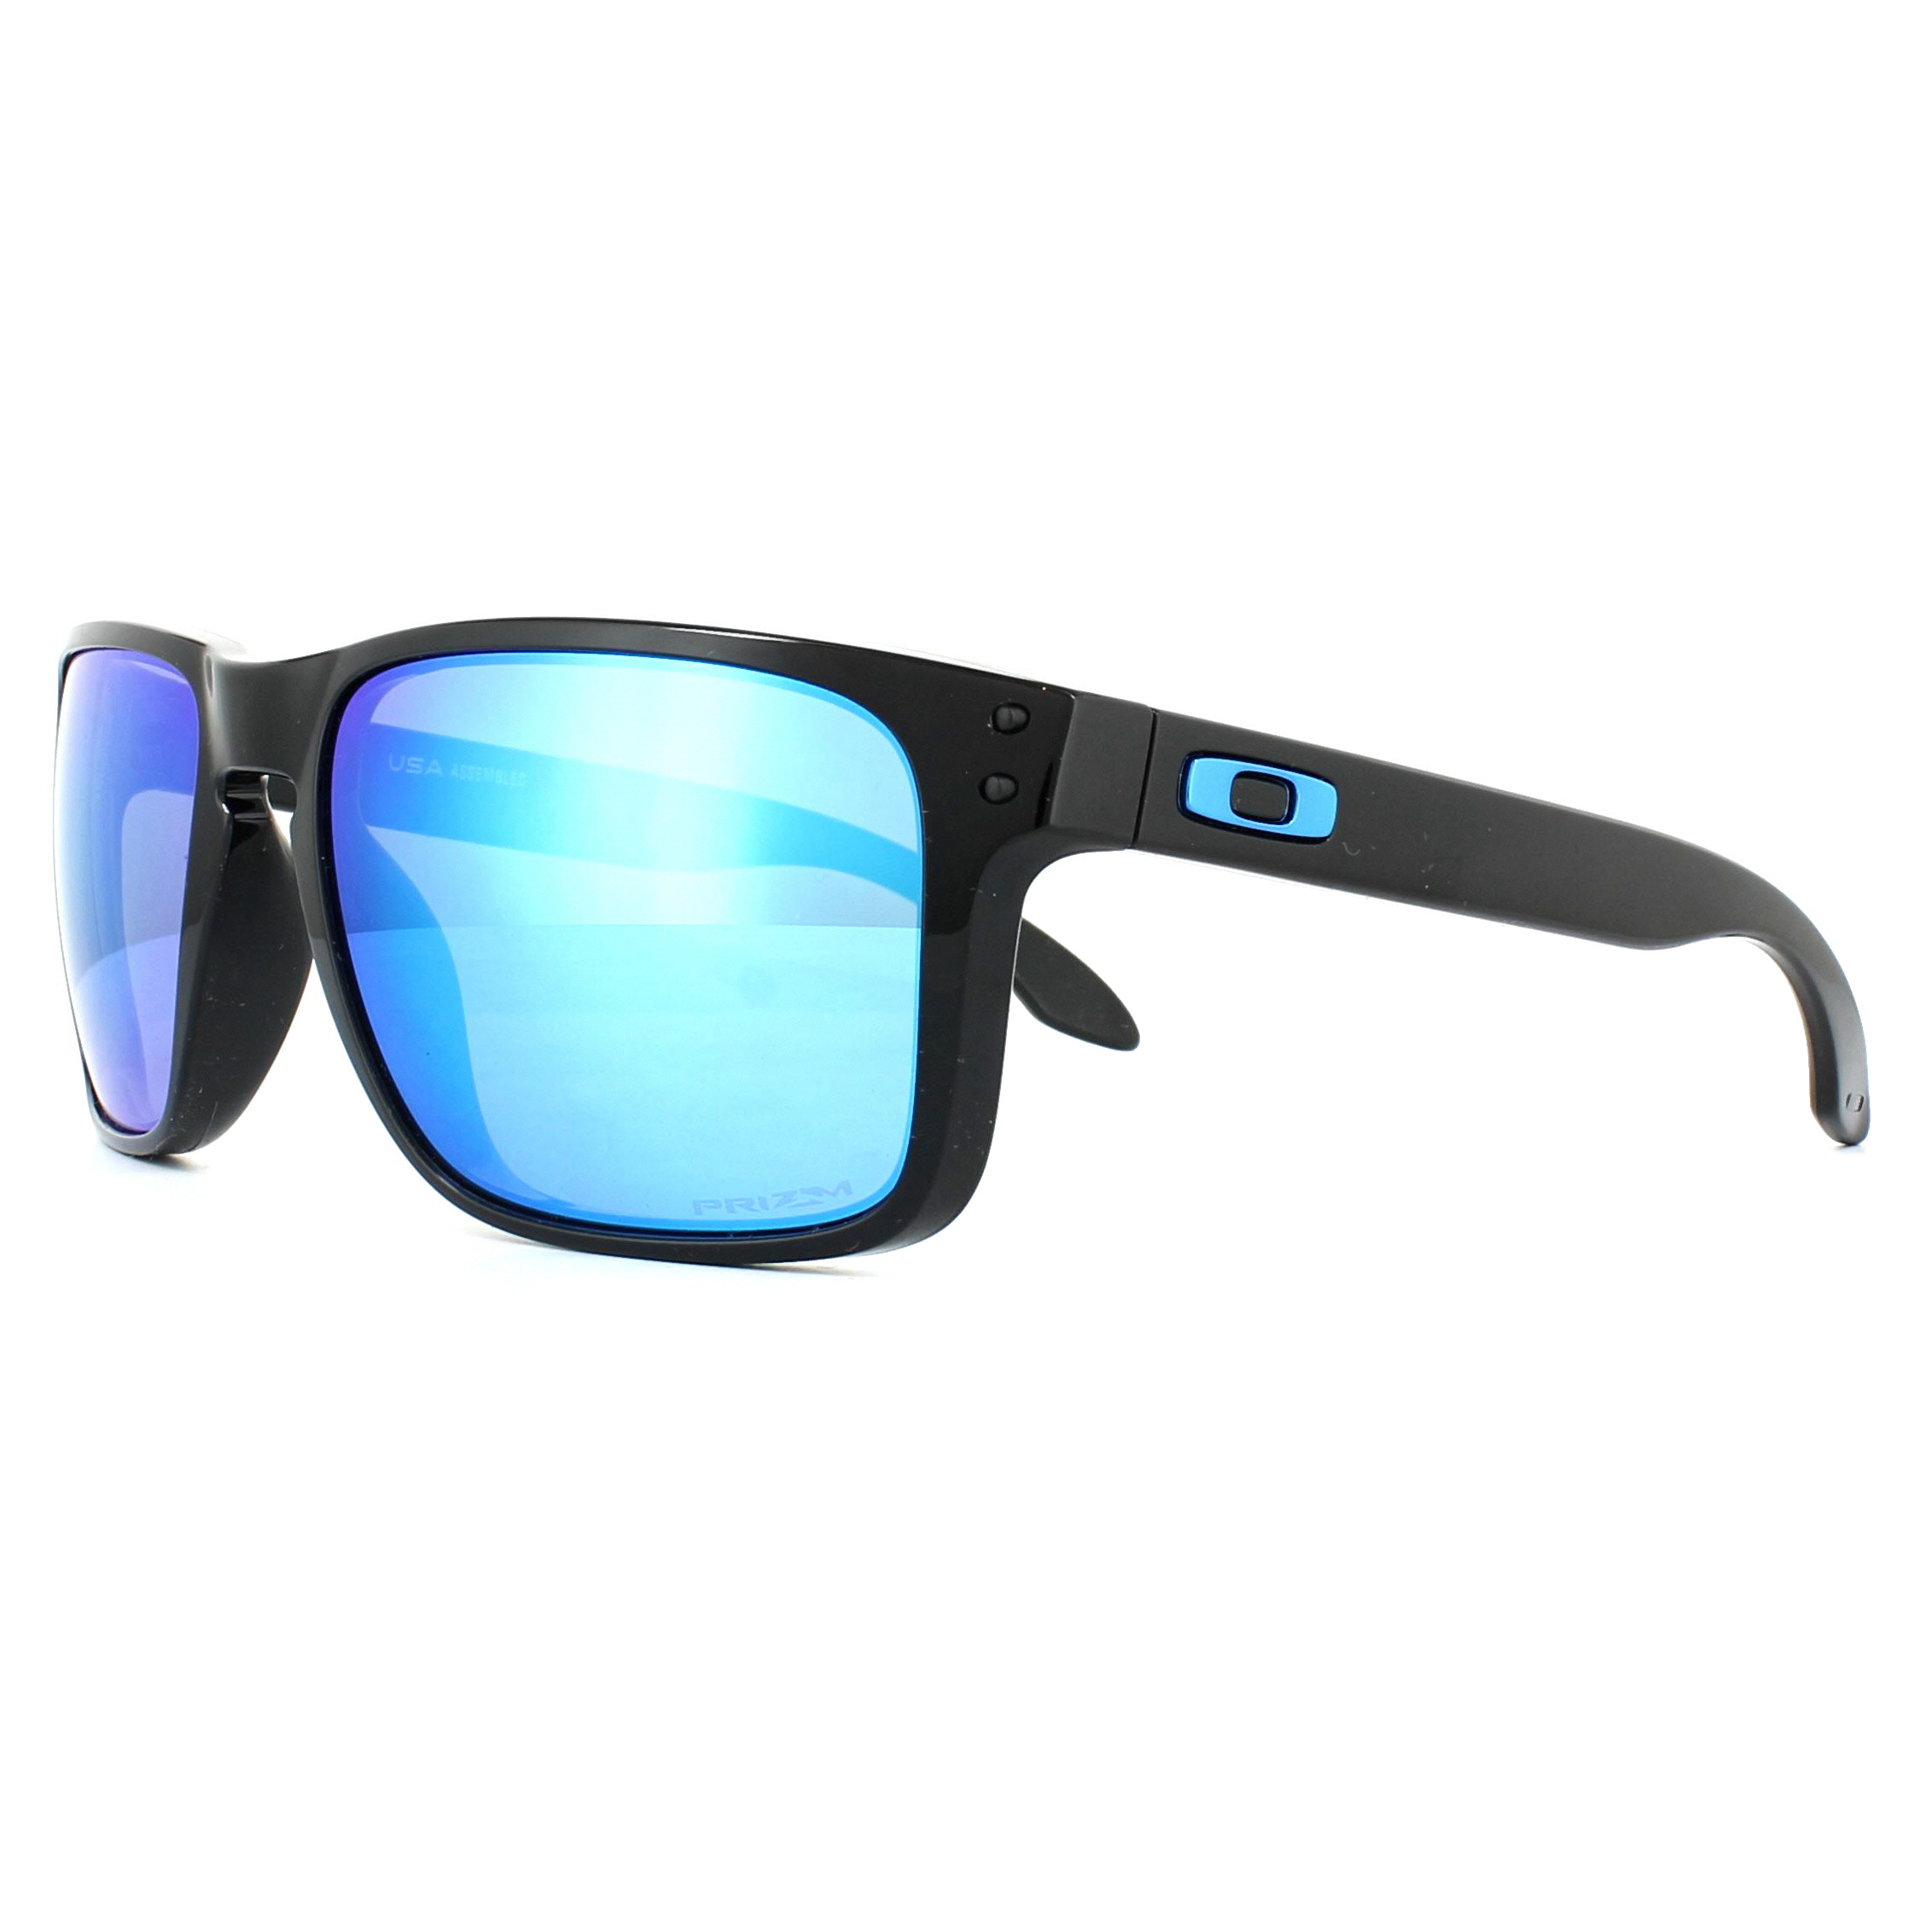 5c0d2d1f48 Cheap Oakley Holbrook XL Sunglasses - Discounted Sunglasses